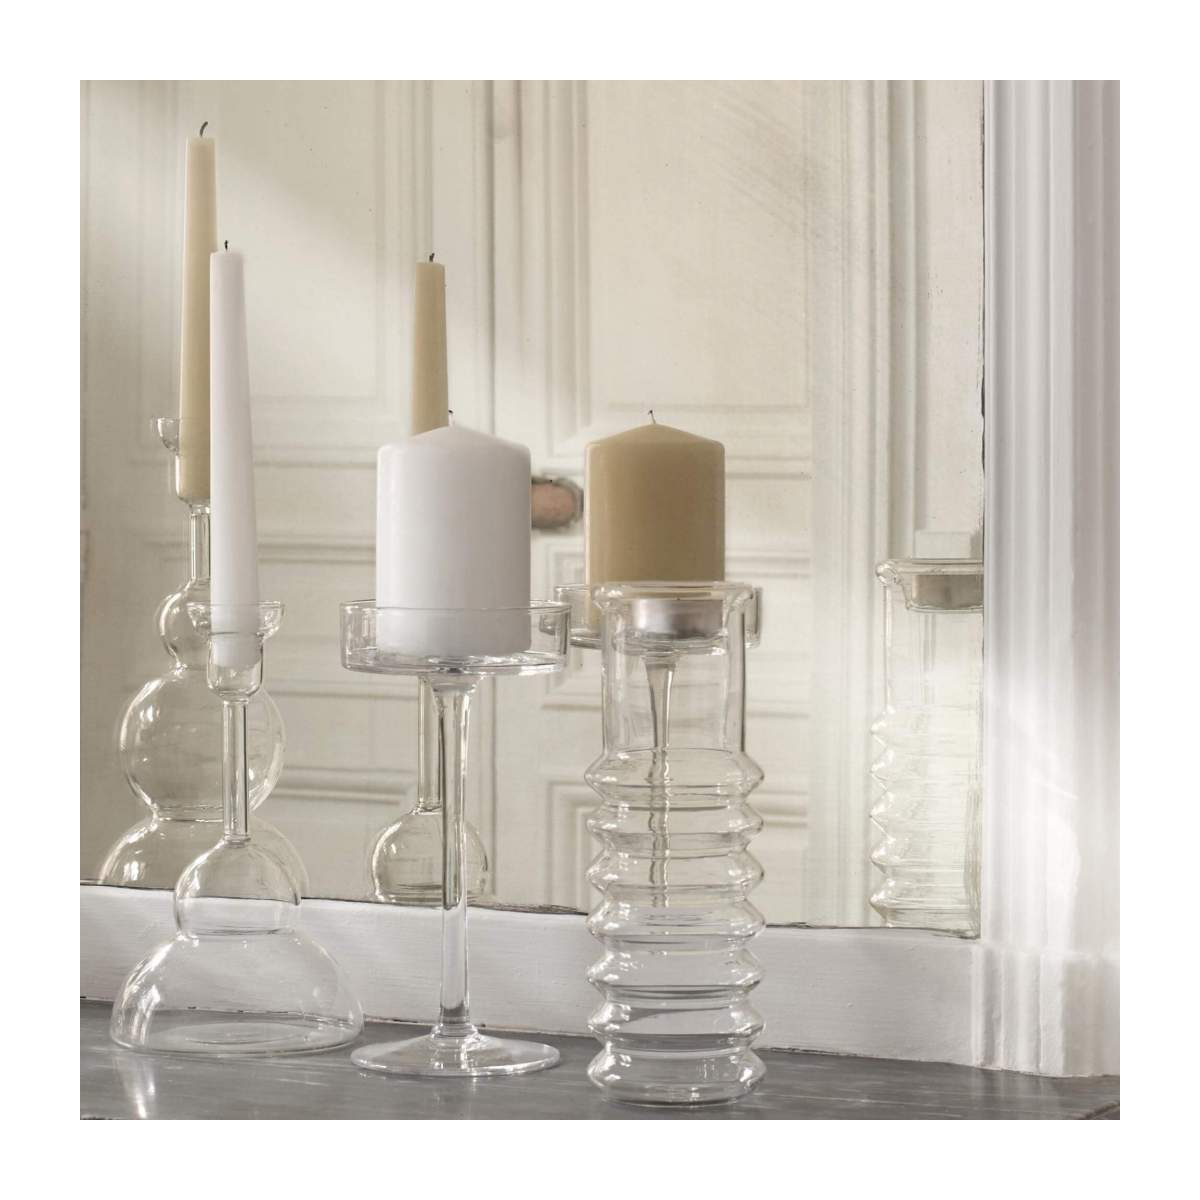 Large glass candlestick n°4